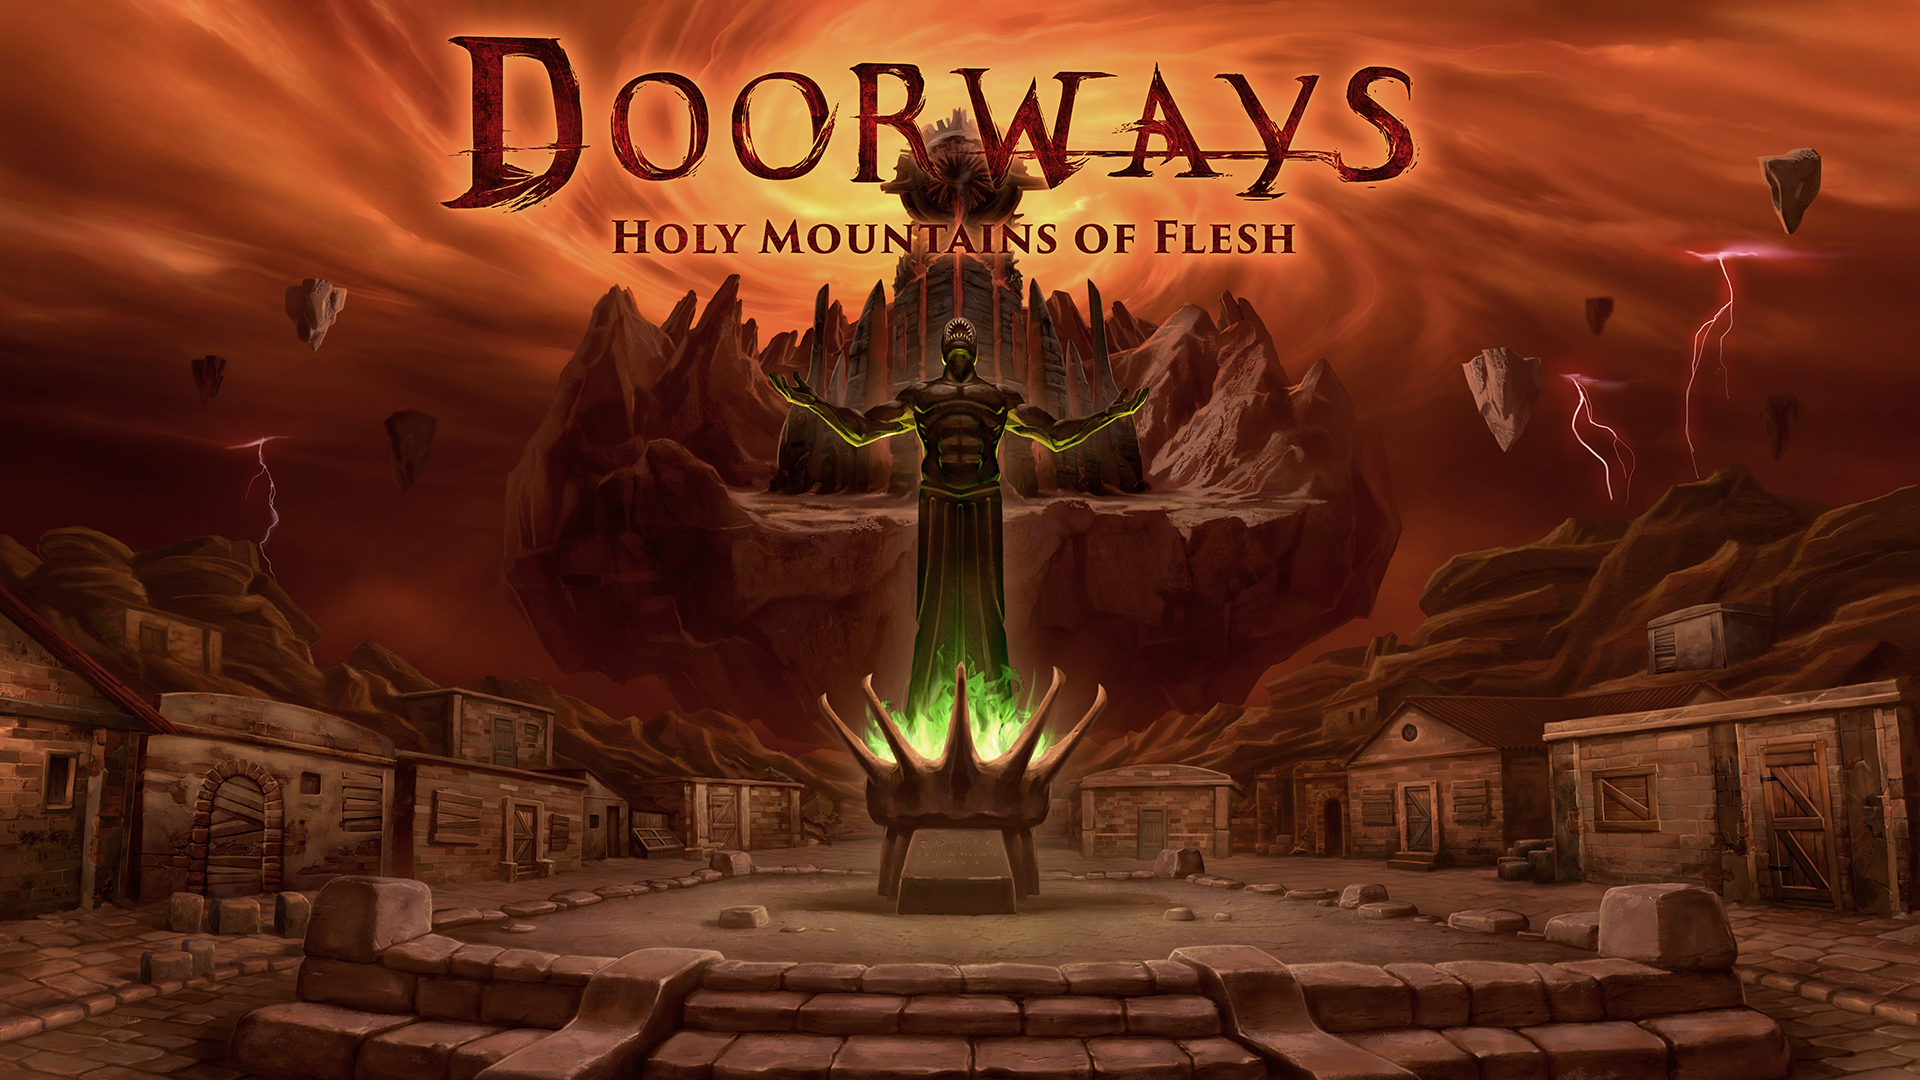 Doorways - Holy Mountains of Flesh